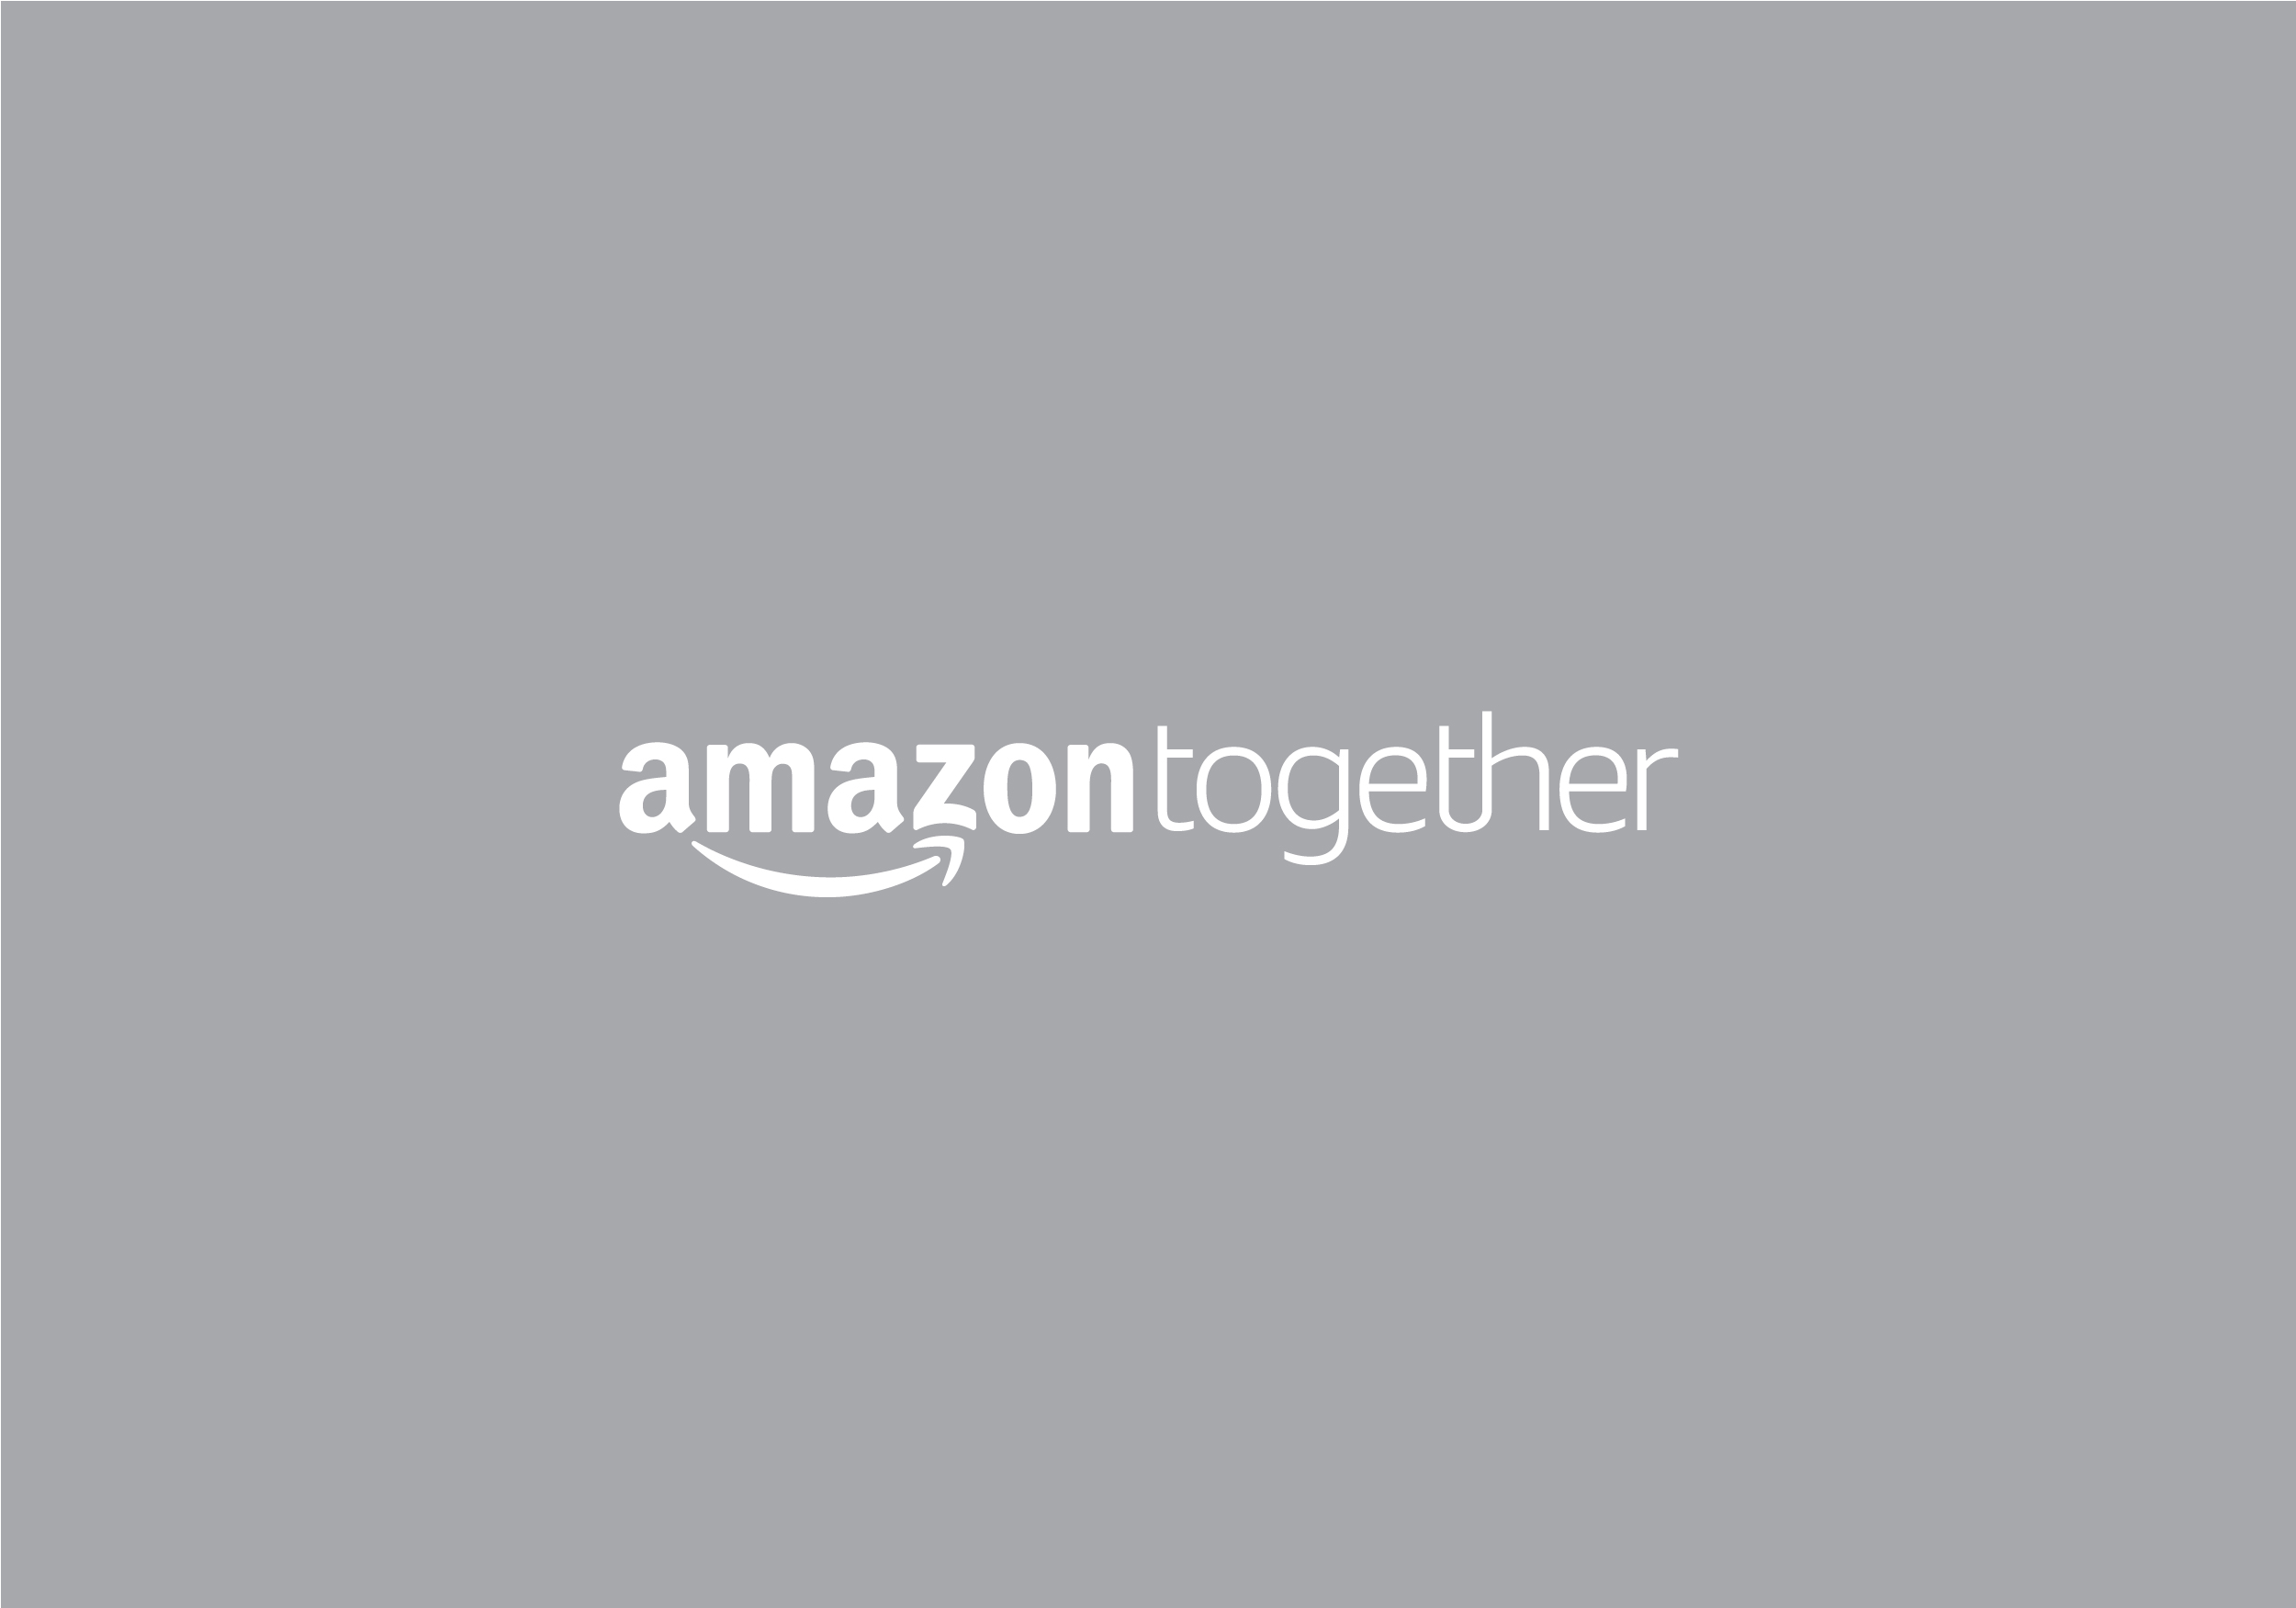 AmazonTogether_logo.jpg